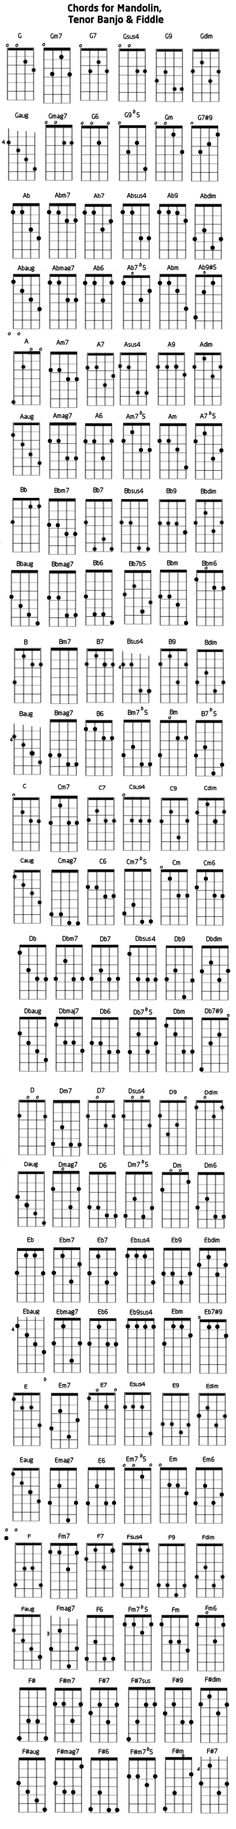 Chord sheet full Jan 2013